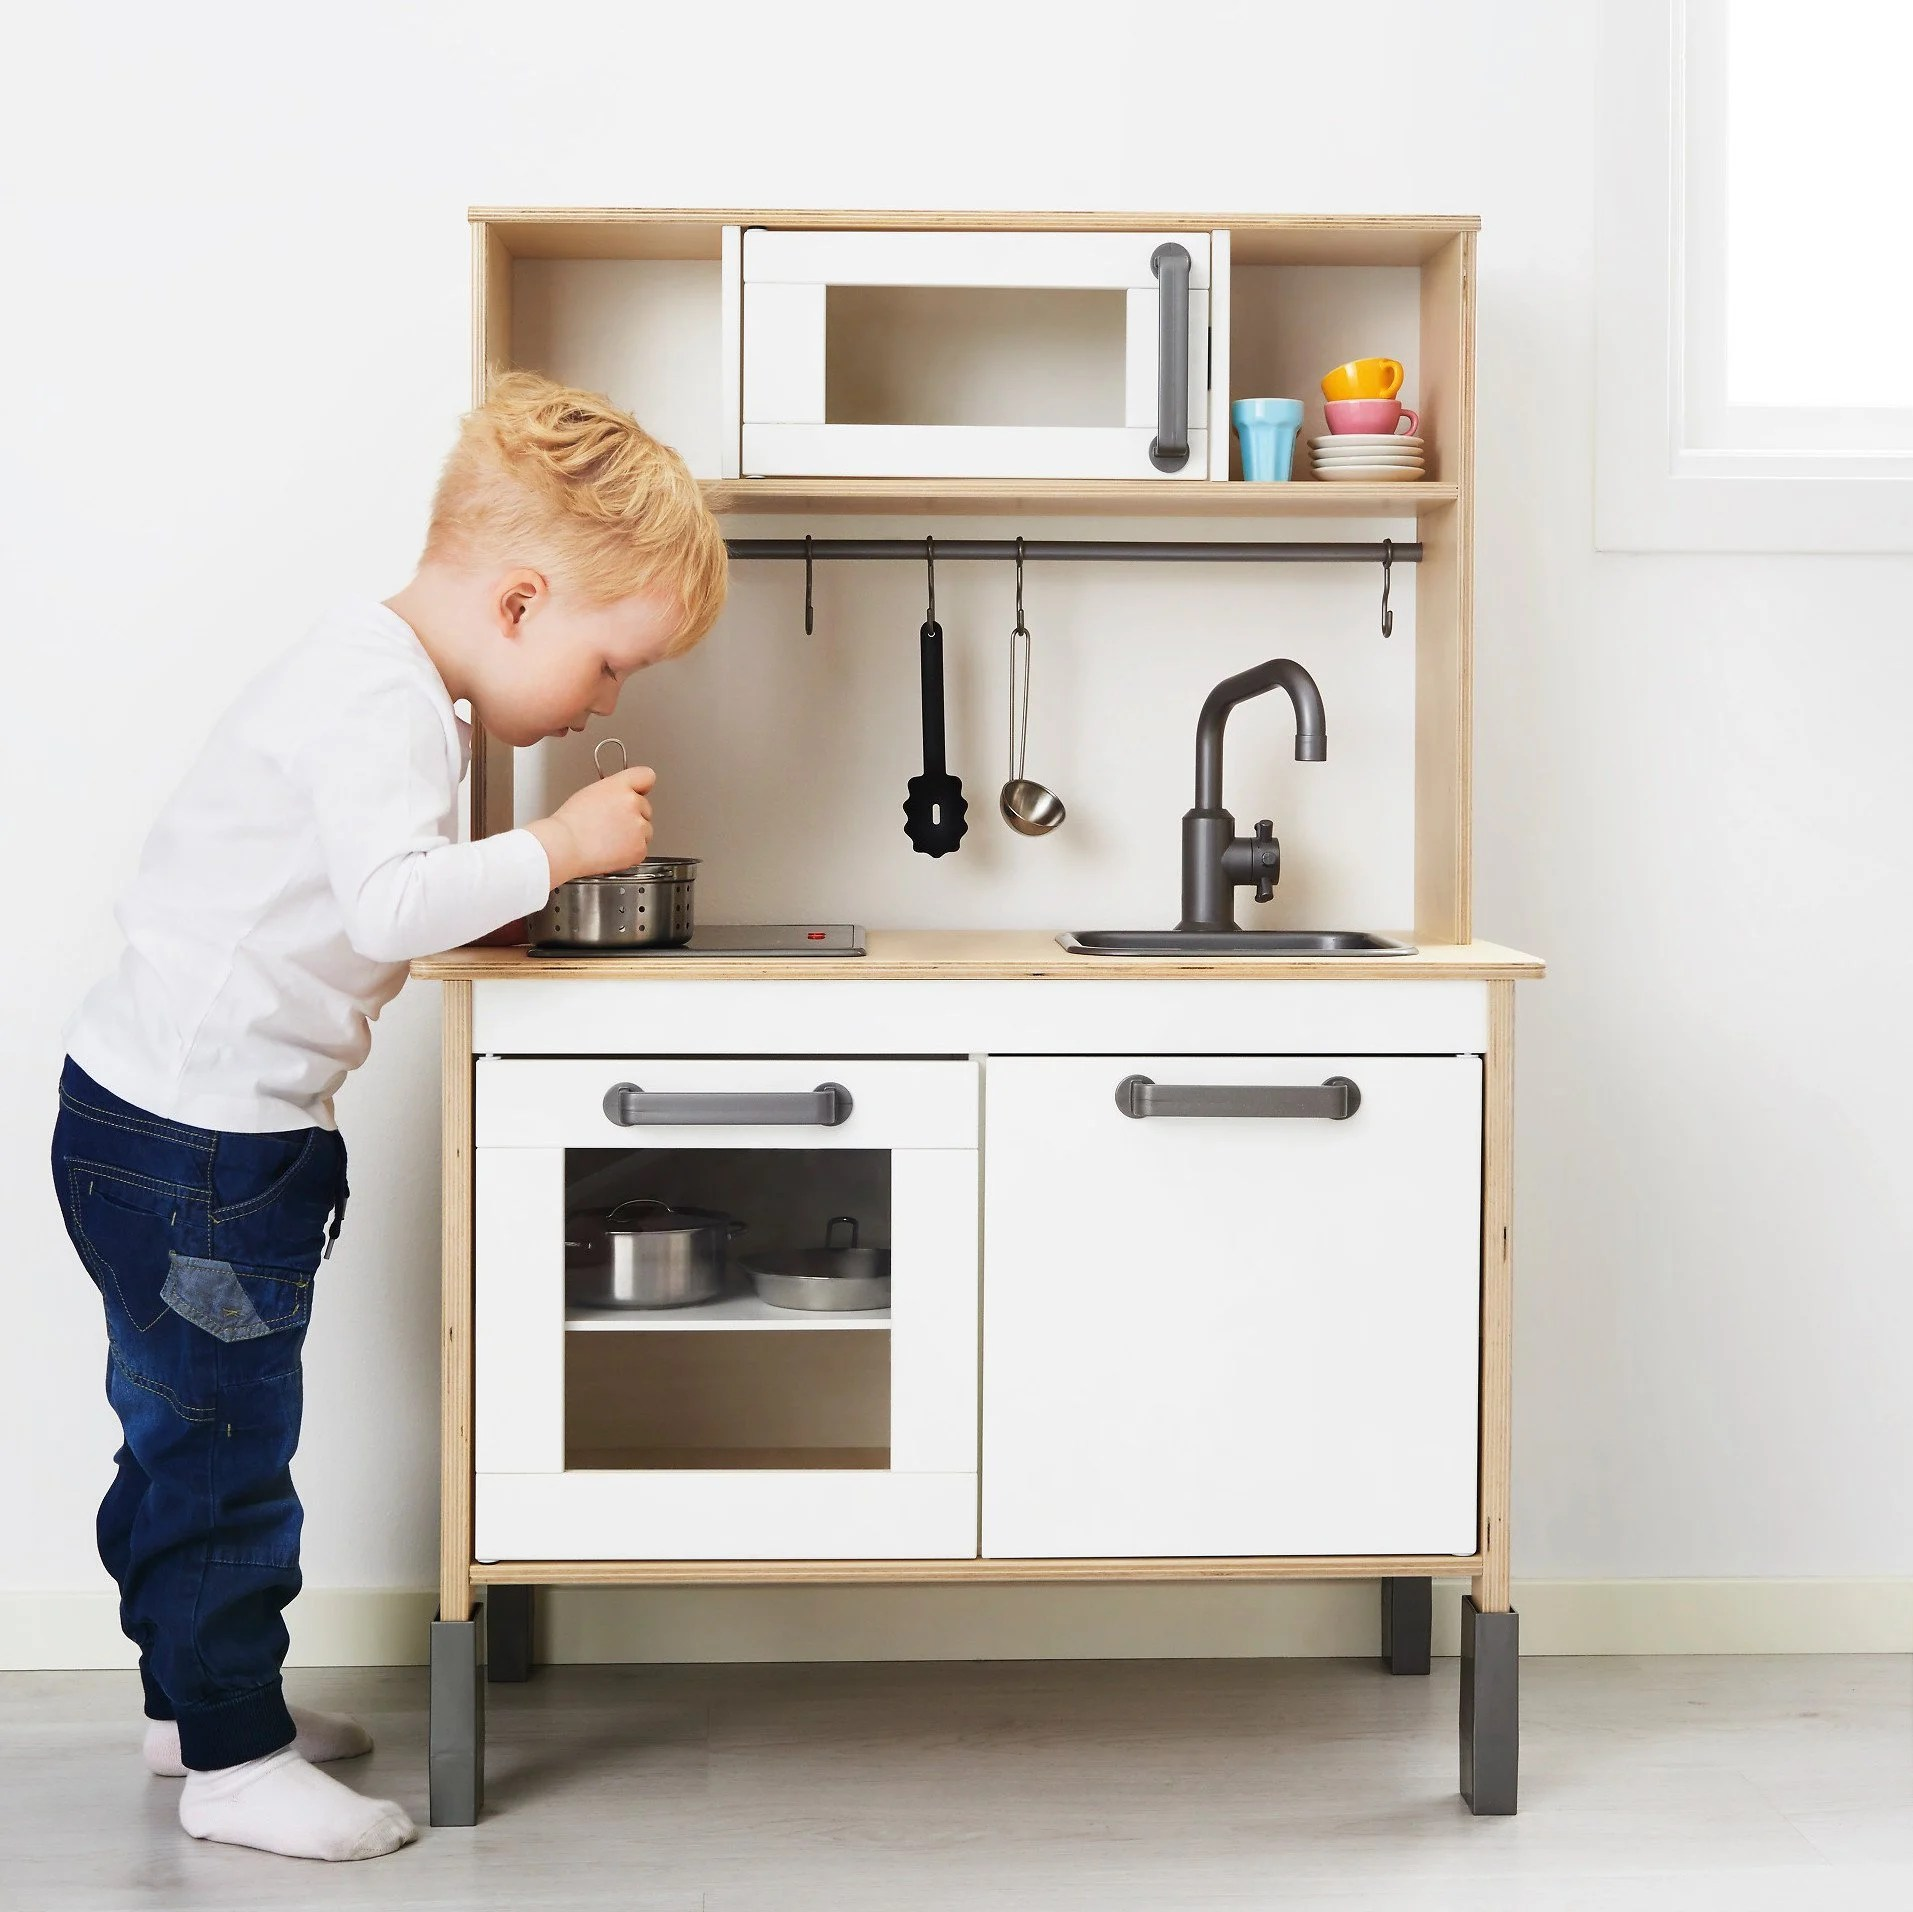 Mini Kitchen Hackers Help Functional Mini Kitchen For Toddlers Ikea Hackers